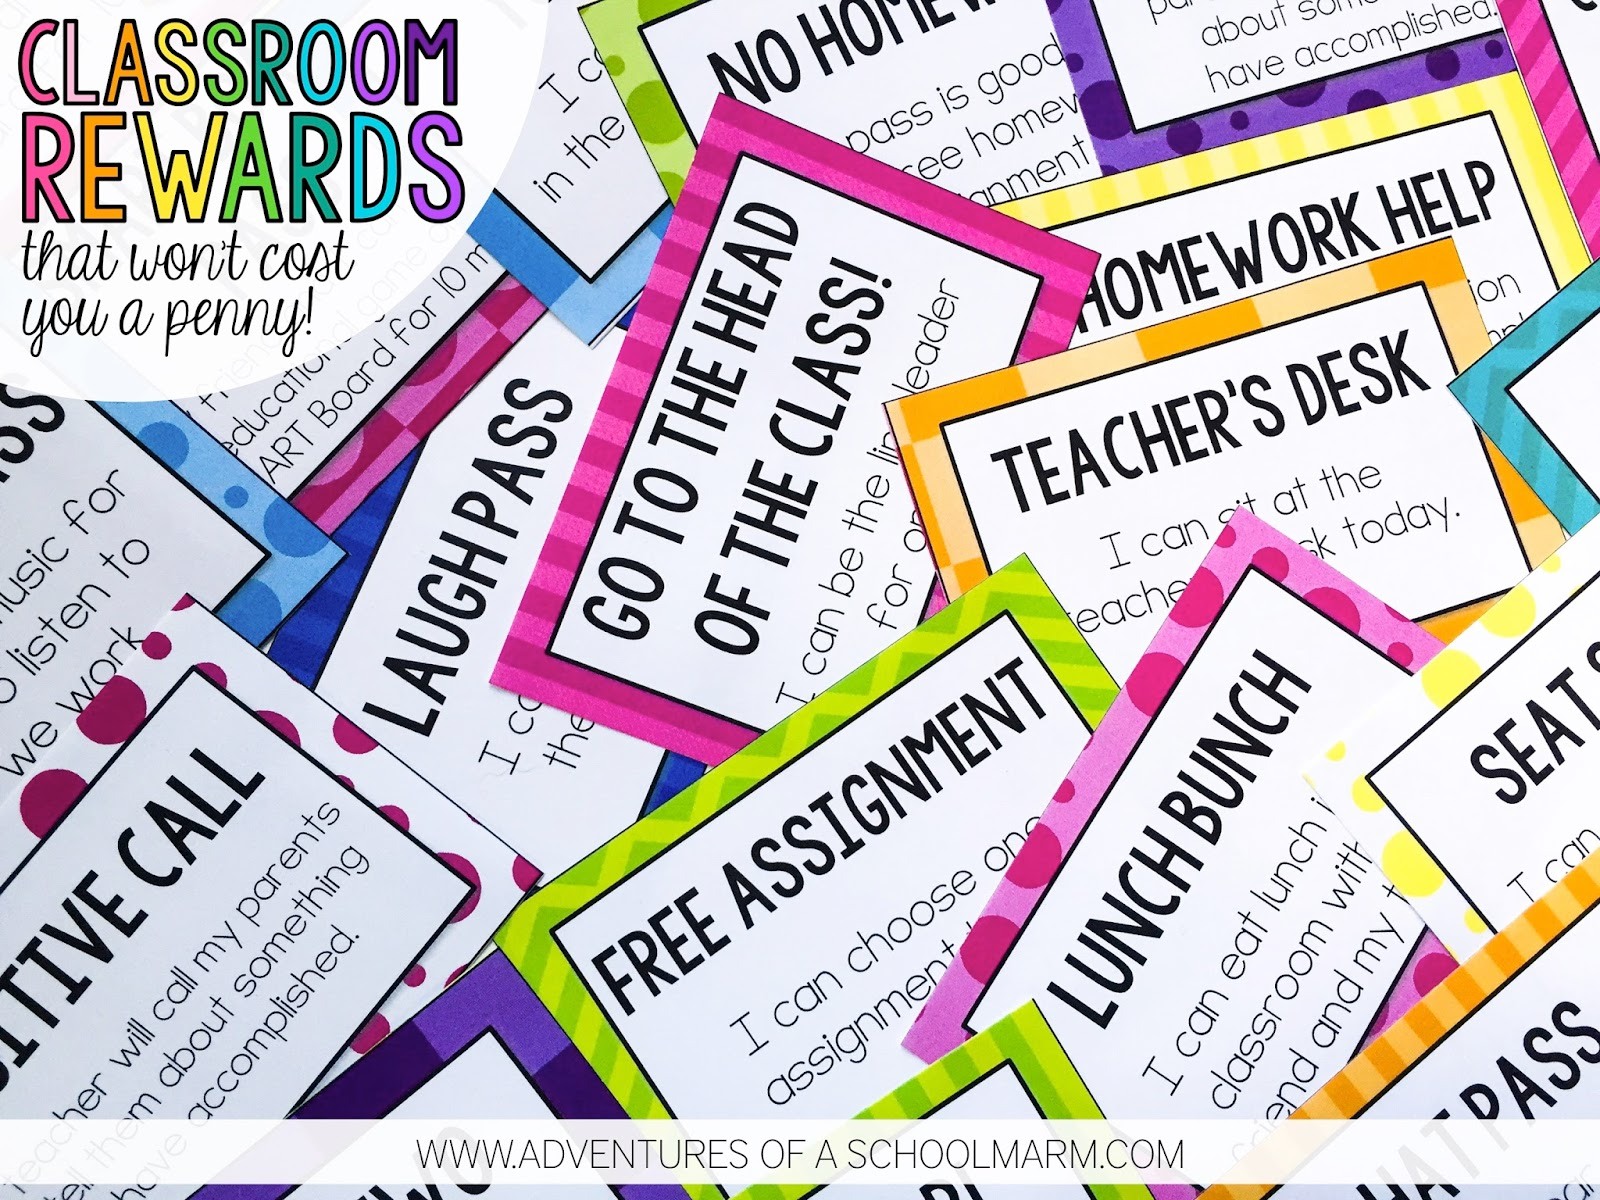 Classroom Reward Ideas For Middle School ~ Classroom rewards that won t cost you a penny